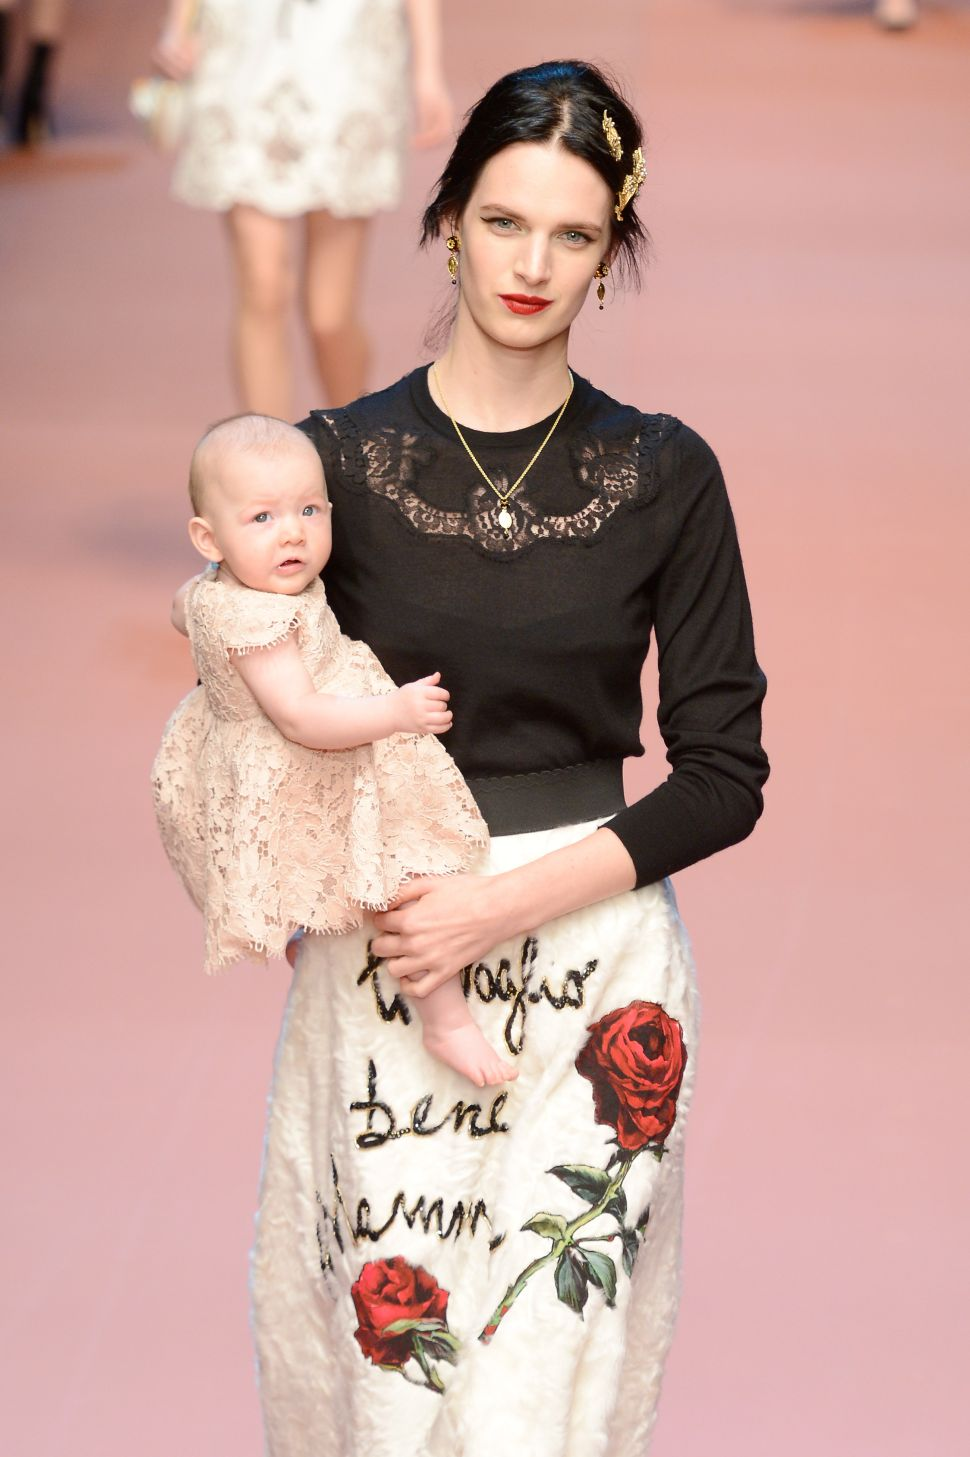 Dolce & Gabbana Celebrate Motherhood & Pregnancy in Their New Collection